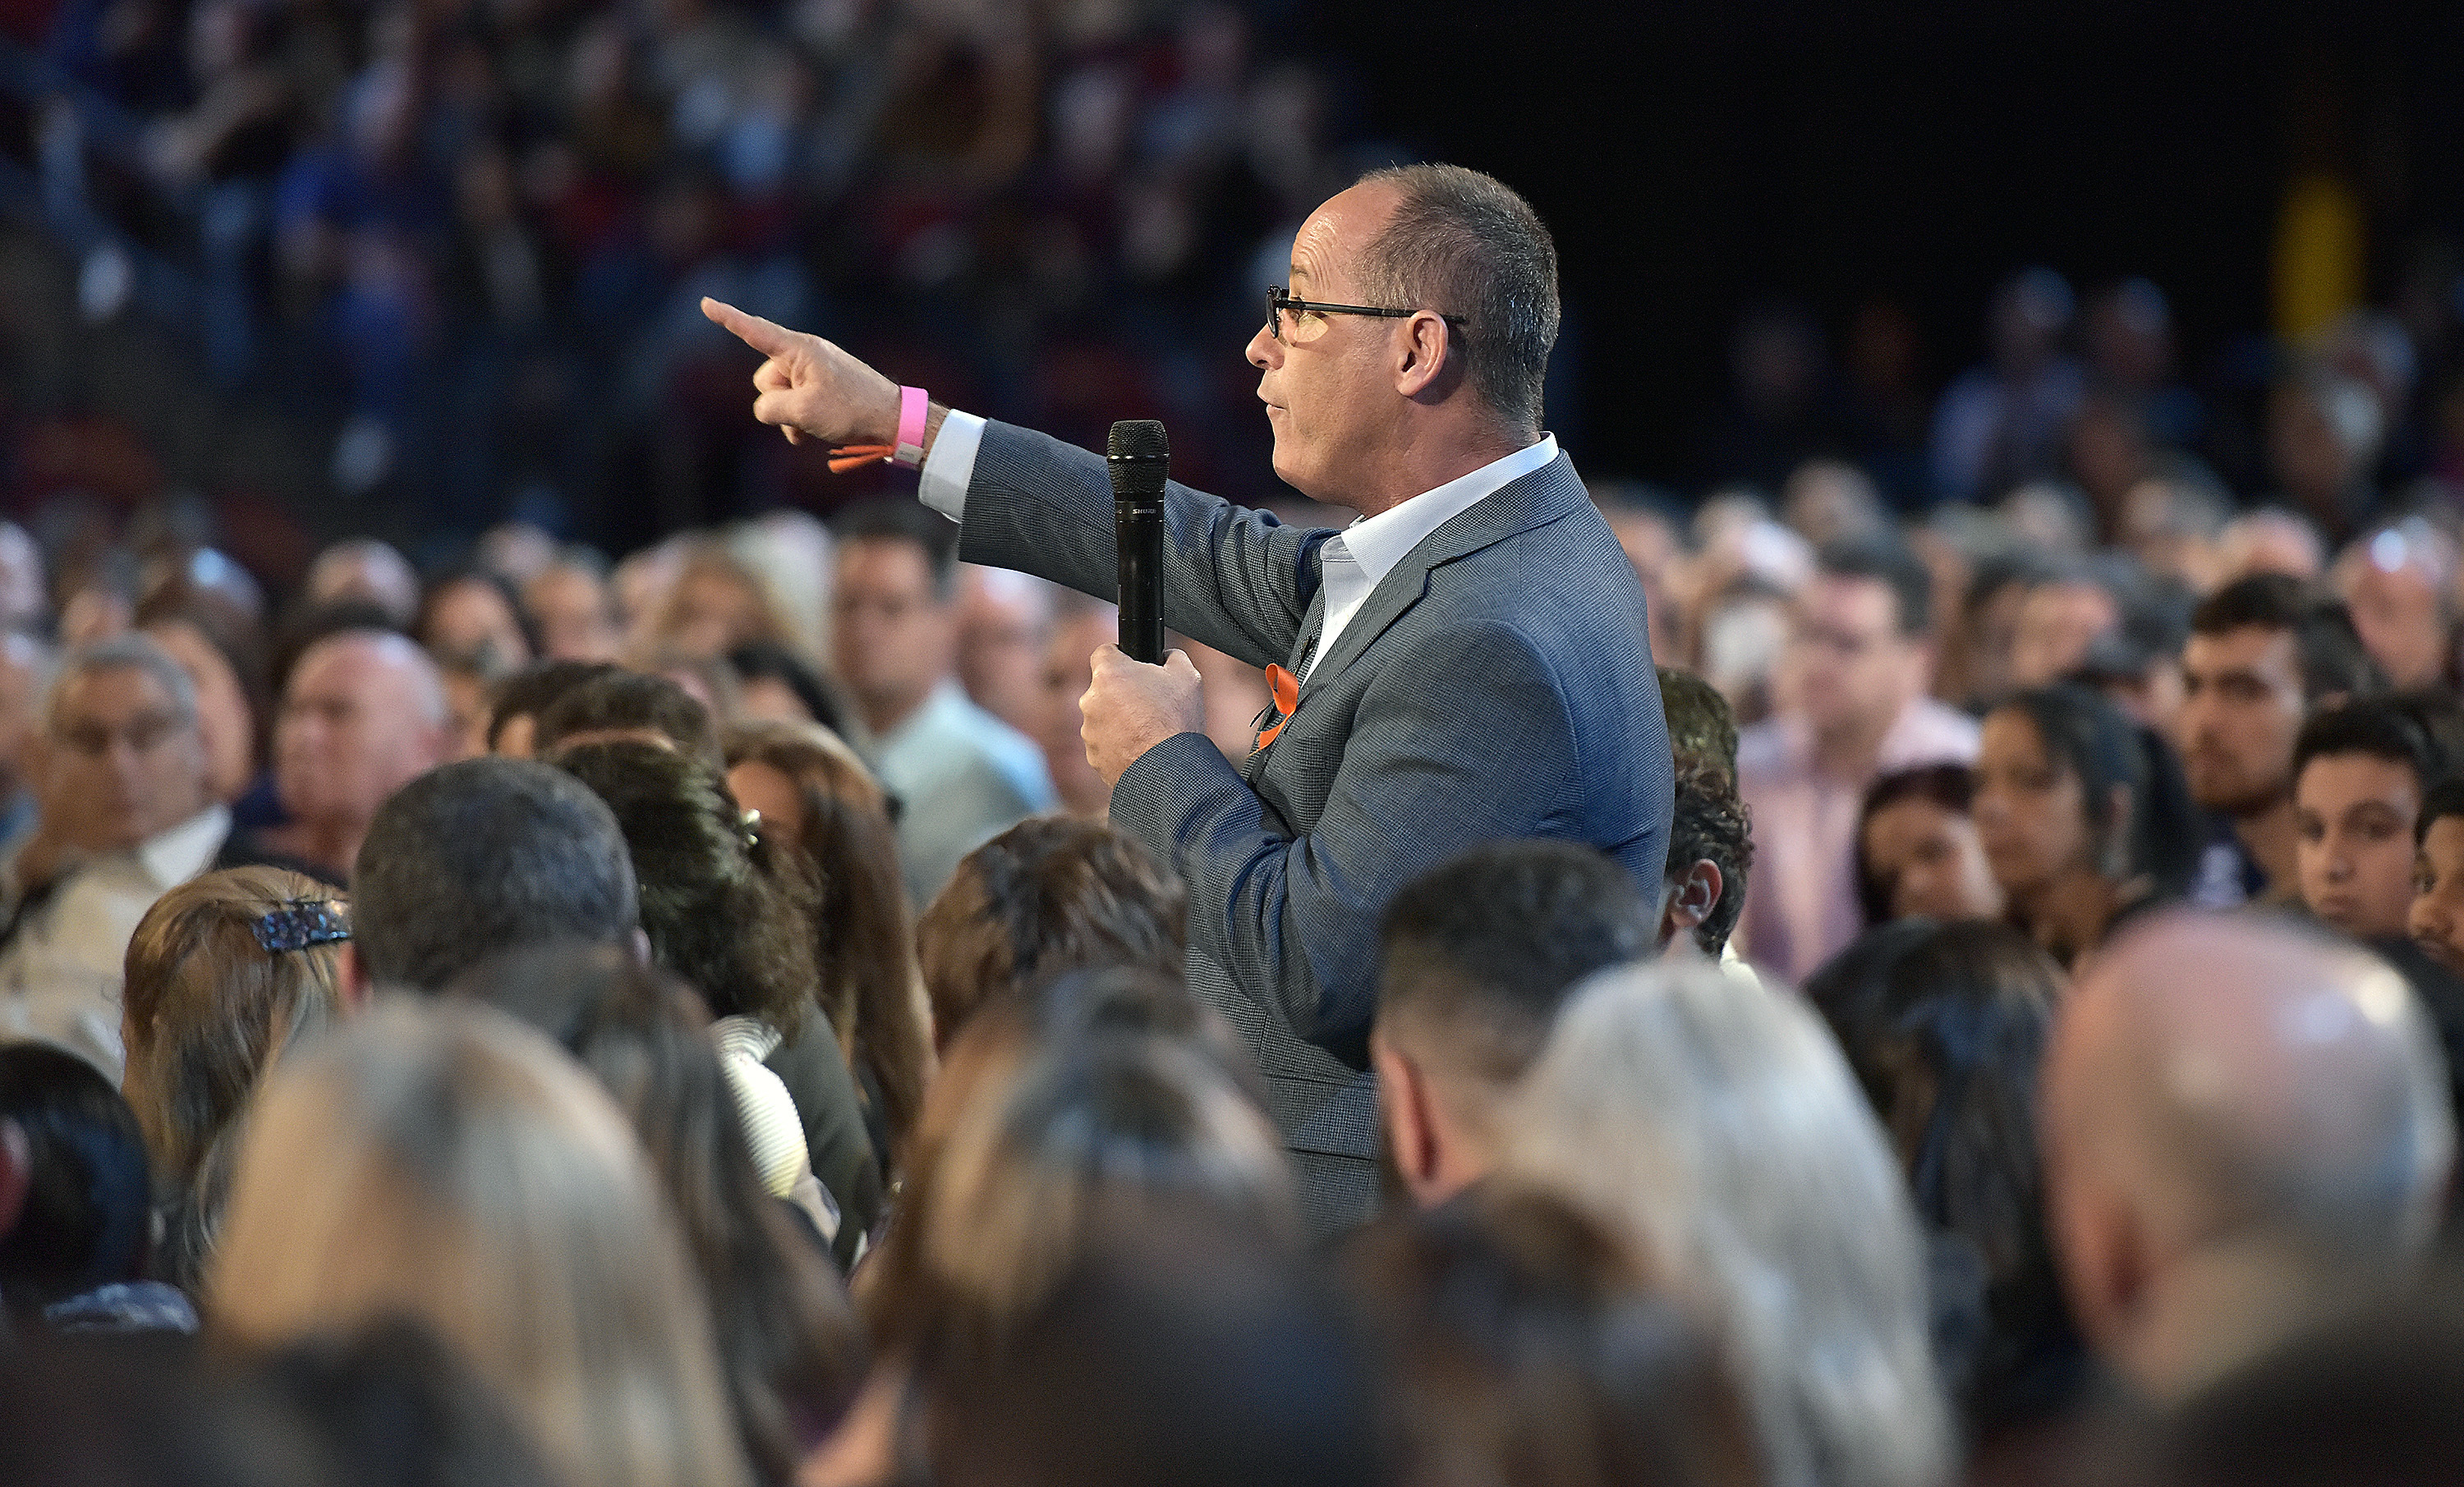 Man in the audience stands up to ask a question in a microphone pointing up to the stage